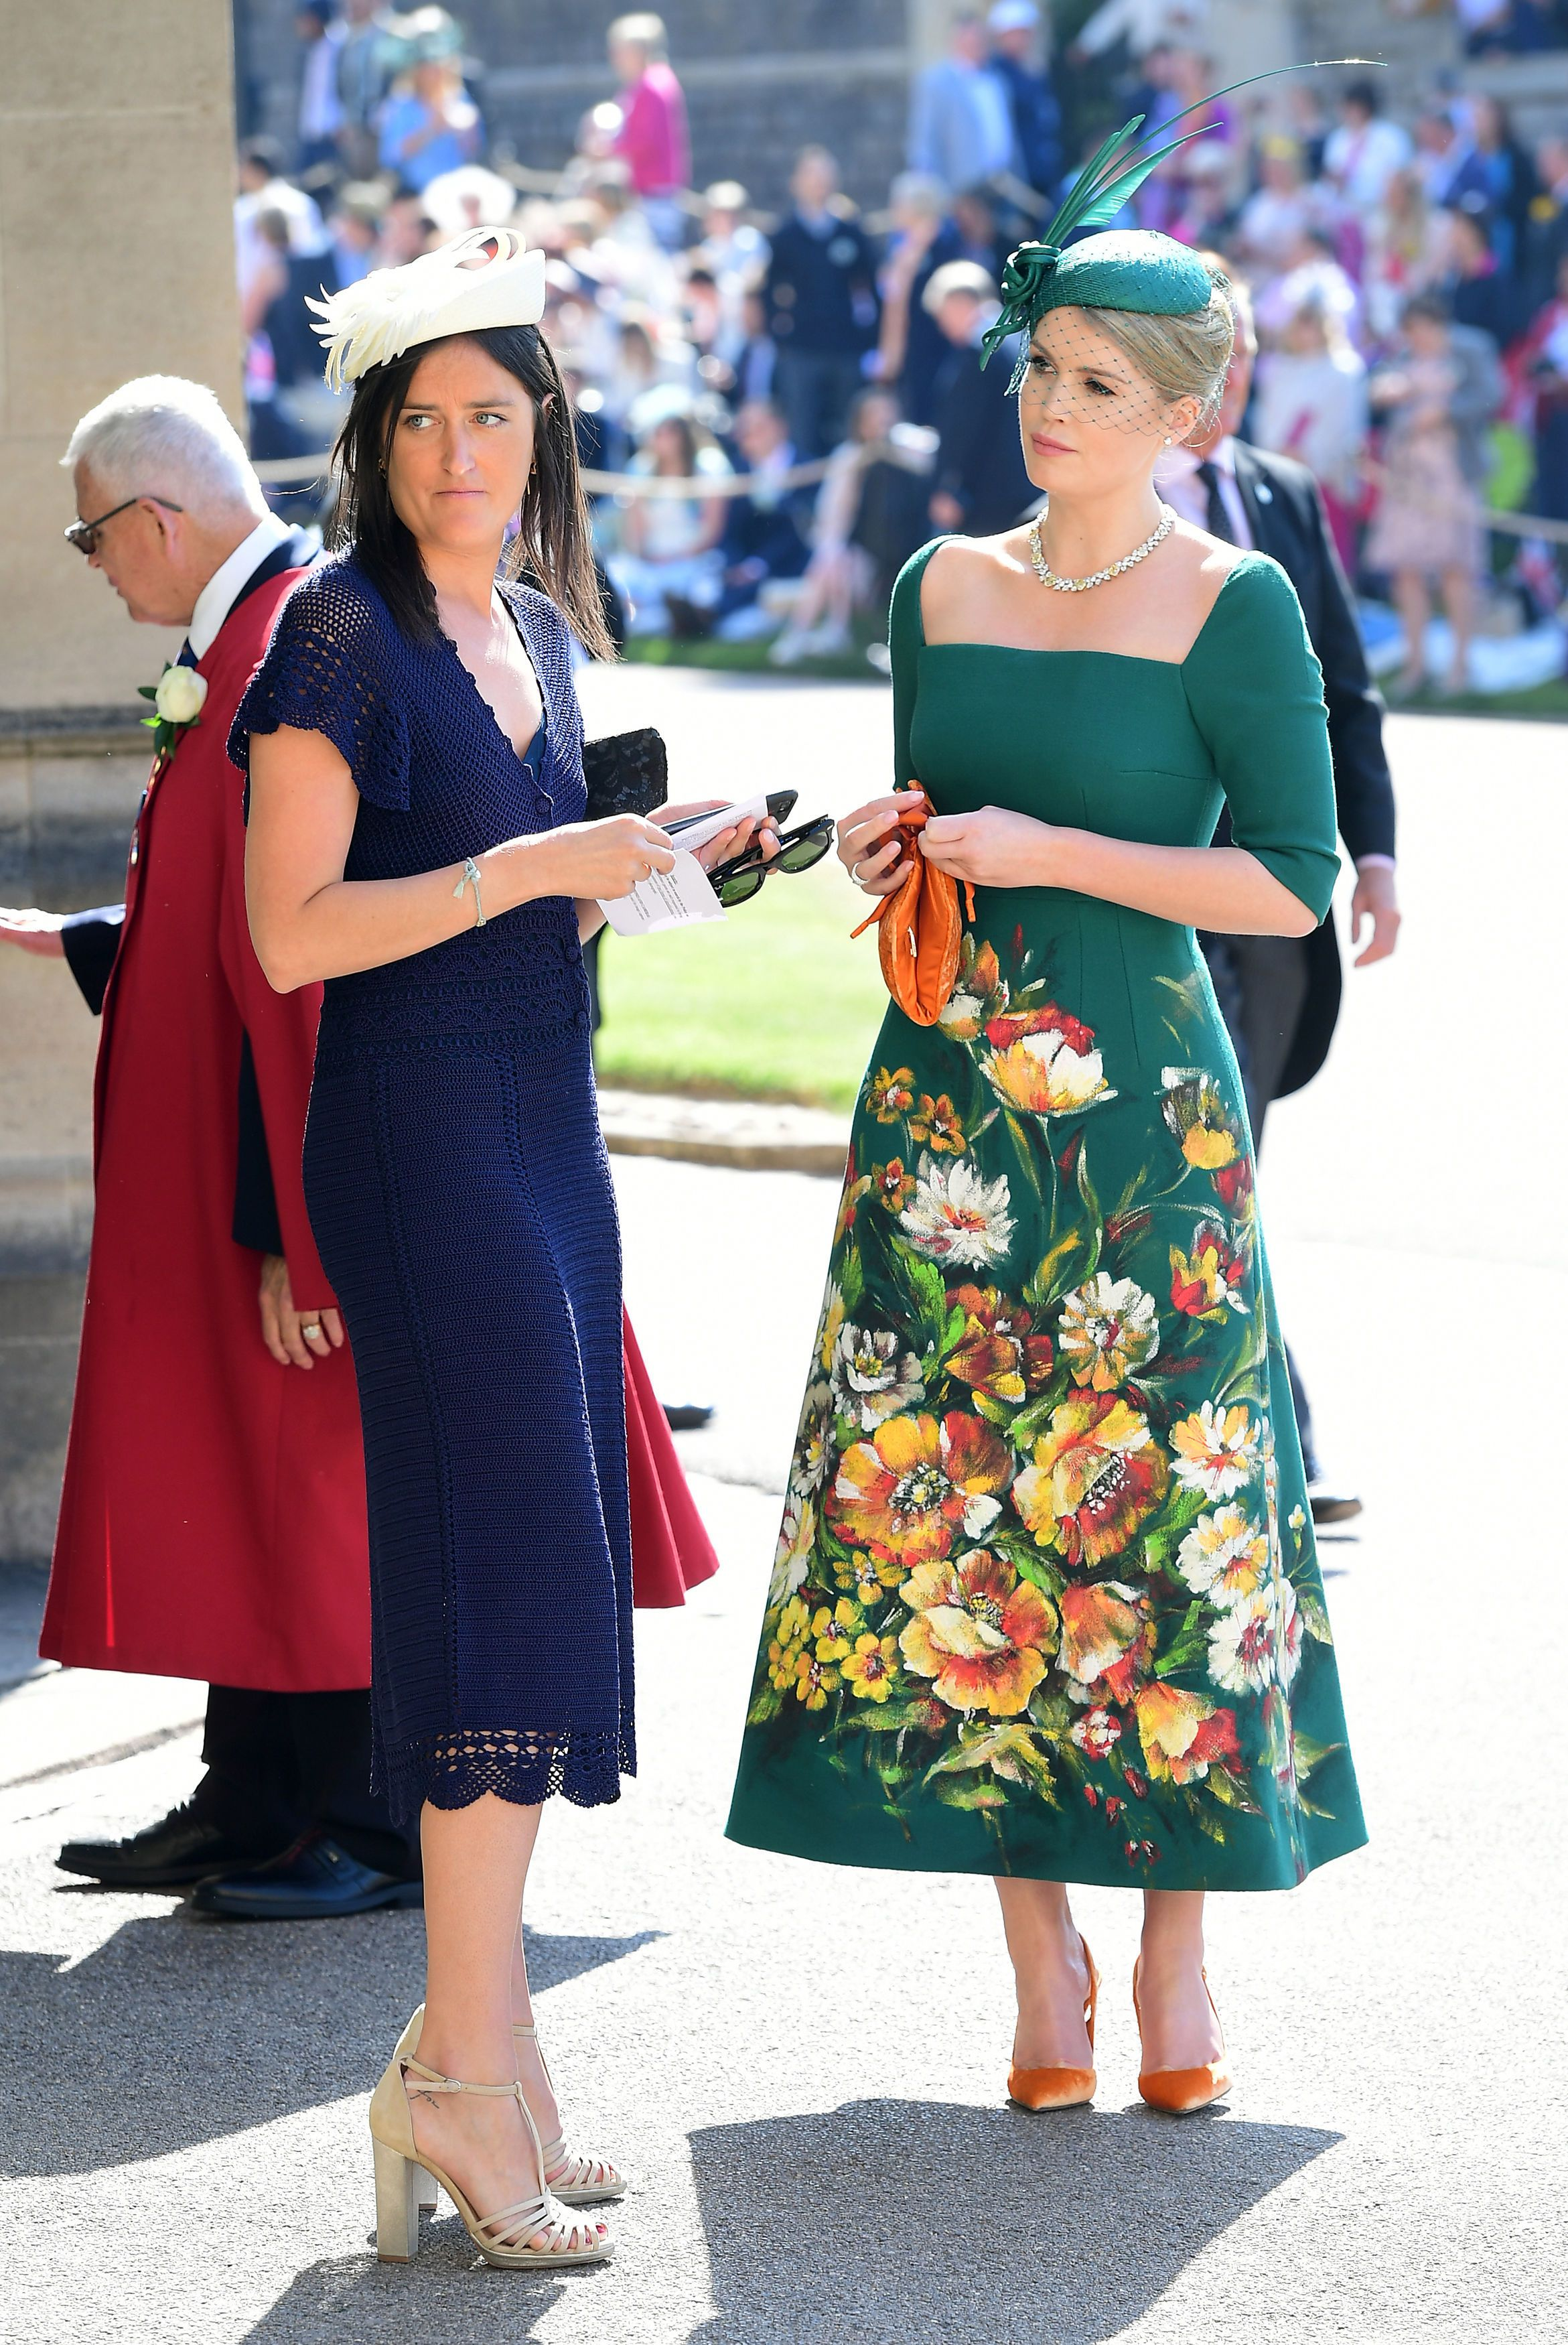 royal wedding 2018 lady kitty spencer